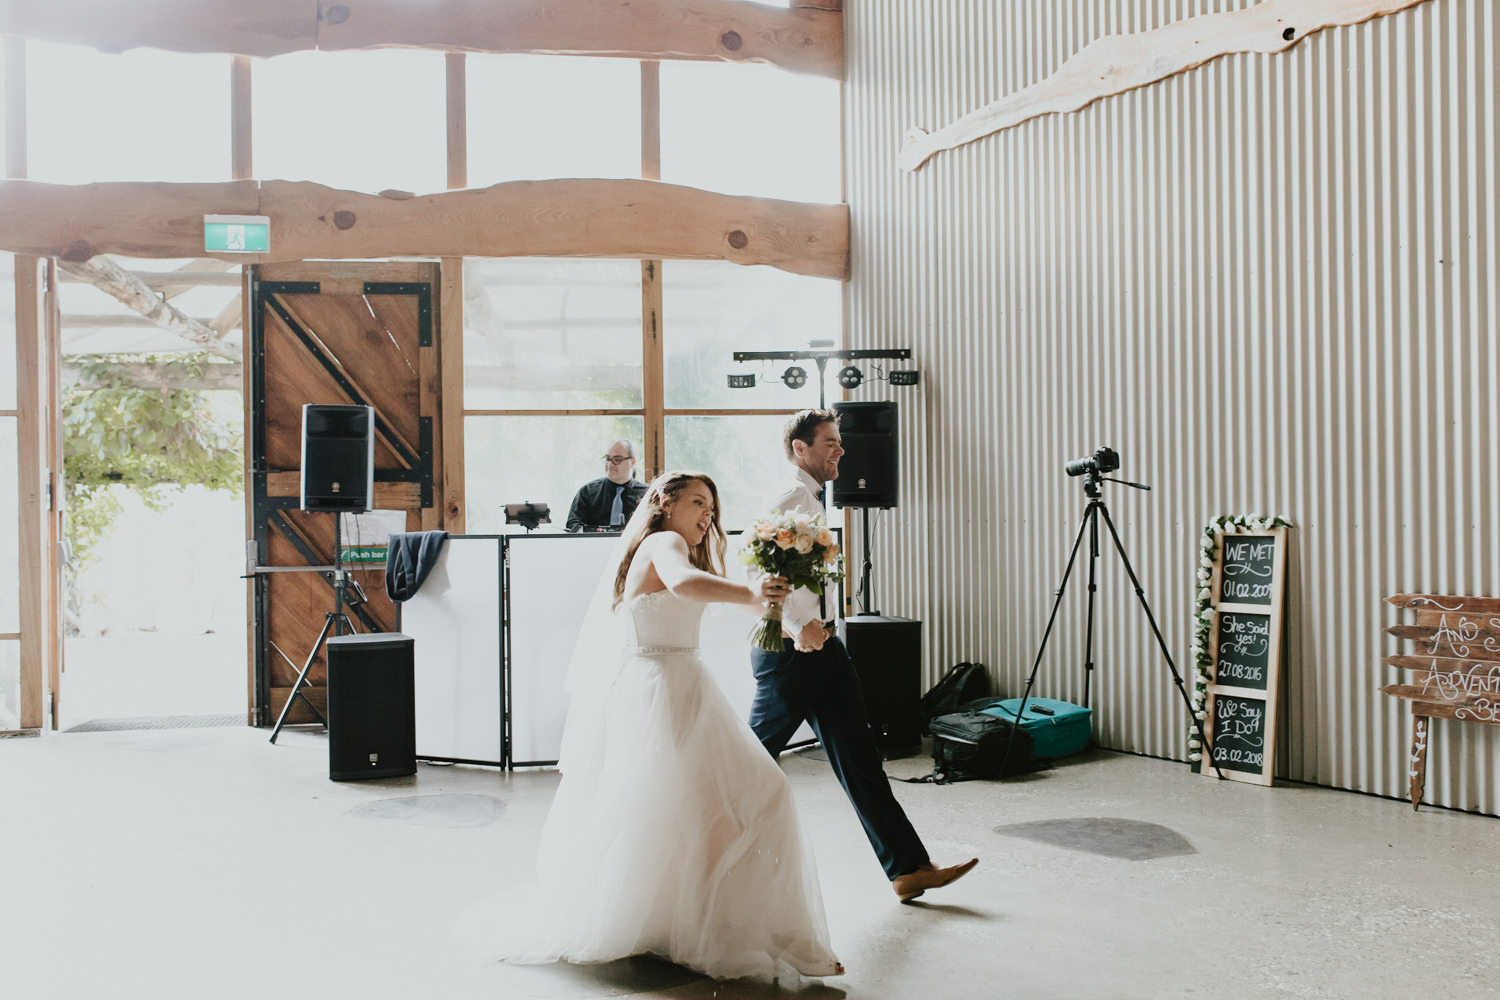 Wedding reception, Rustic Oaklands Barn South Coast Wedding ceremony,  Jenny Wu Straight No Chaser Photography Canberra